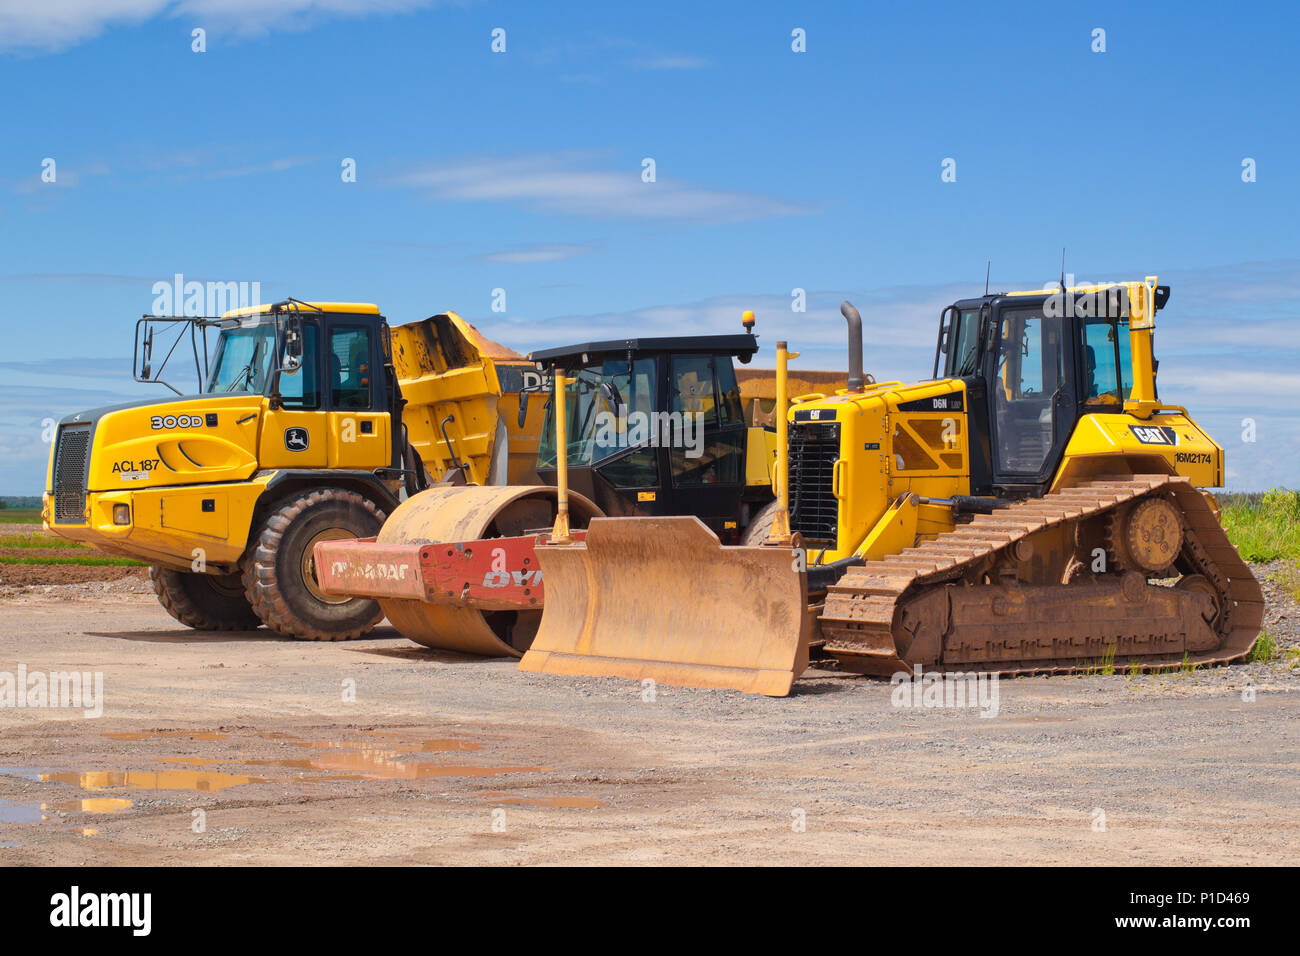 TRURO, CANADA - JUNE 10, 2018: Caterpillar bulldozer, Dynapac roller and John Deere dump truck parked outside on a sunny day. - Stock Image